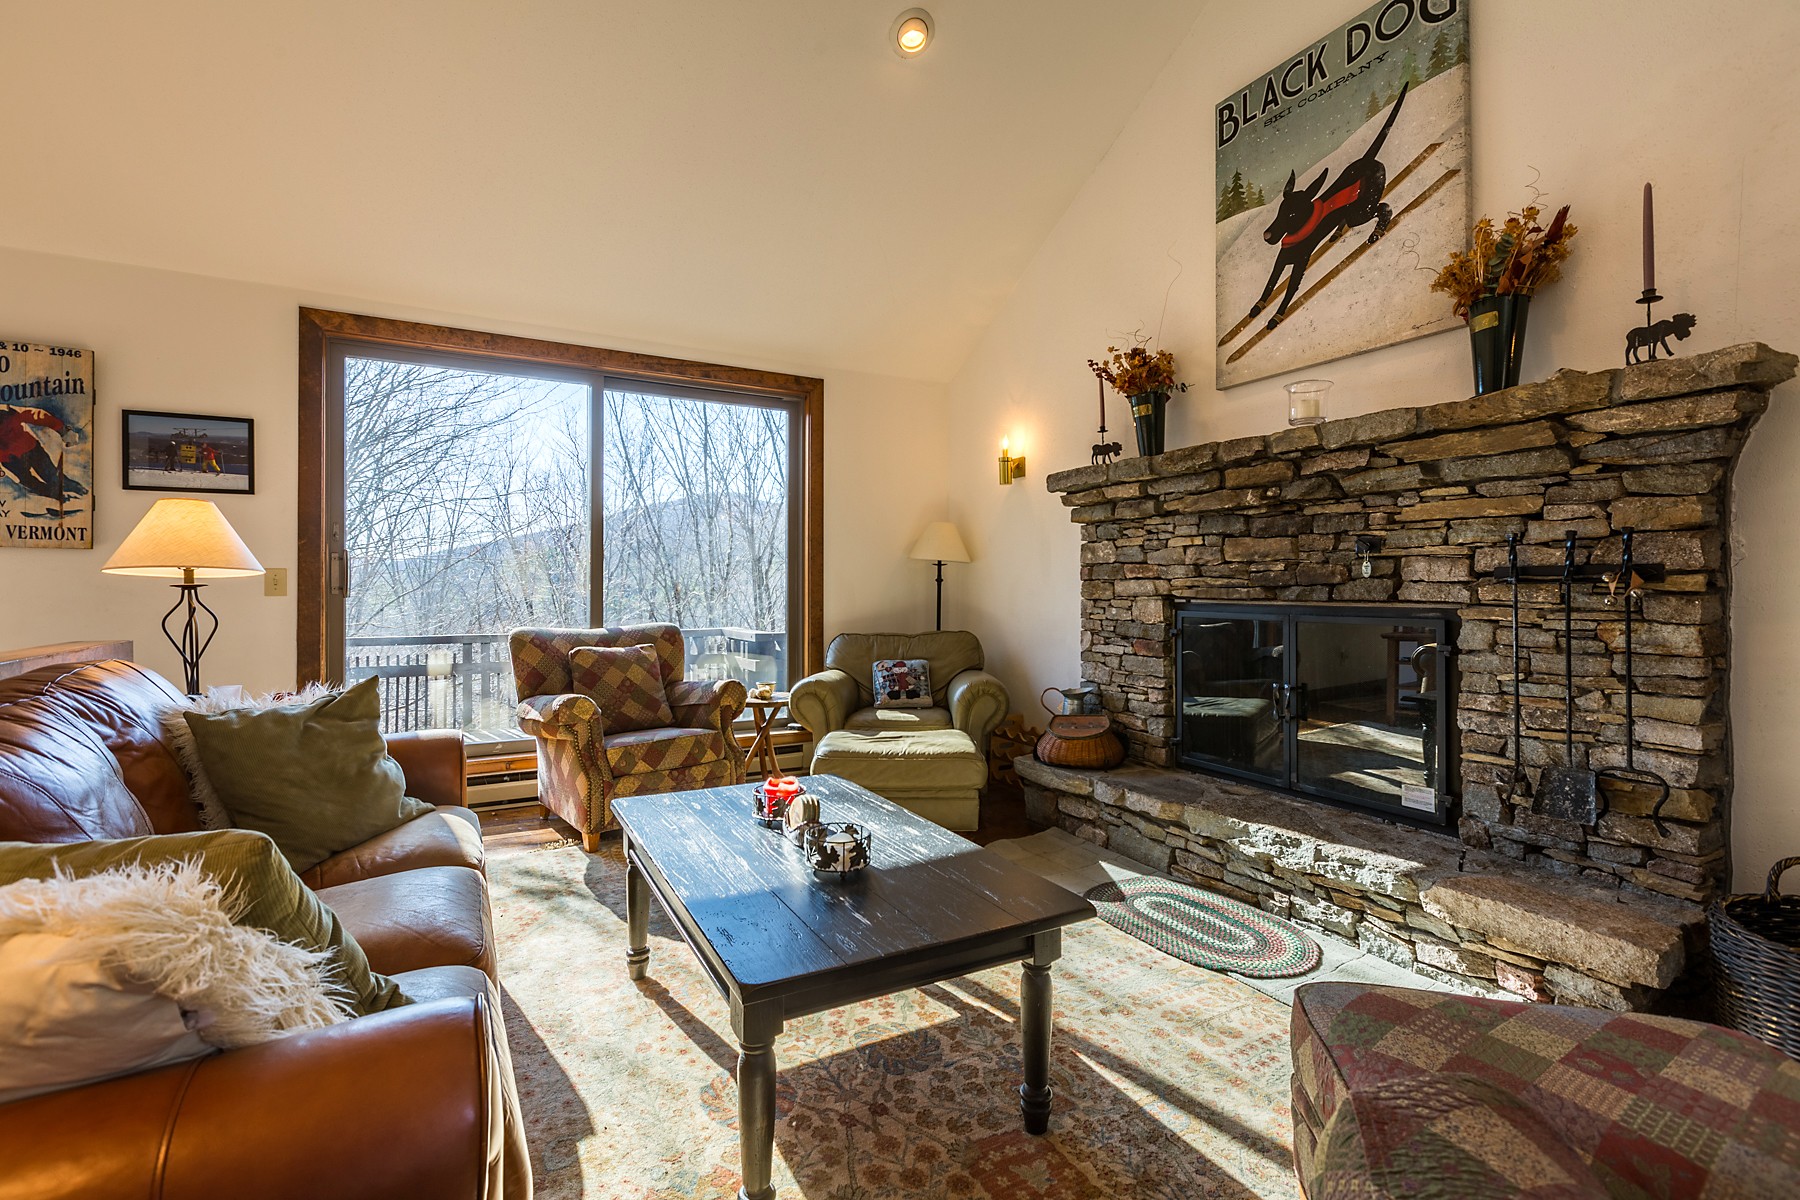 Single Family Homes for Sale at Privately Set Midway Between Okemo & Killington 283 Salt Ash Rd Plymouth, Vermont 05056 United States